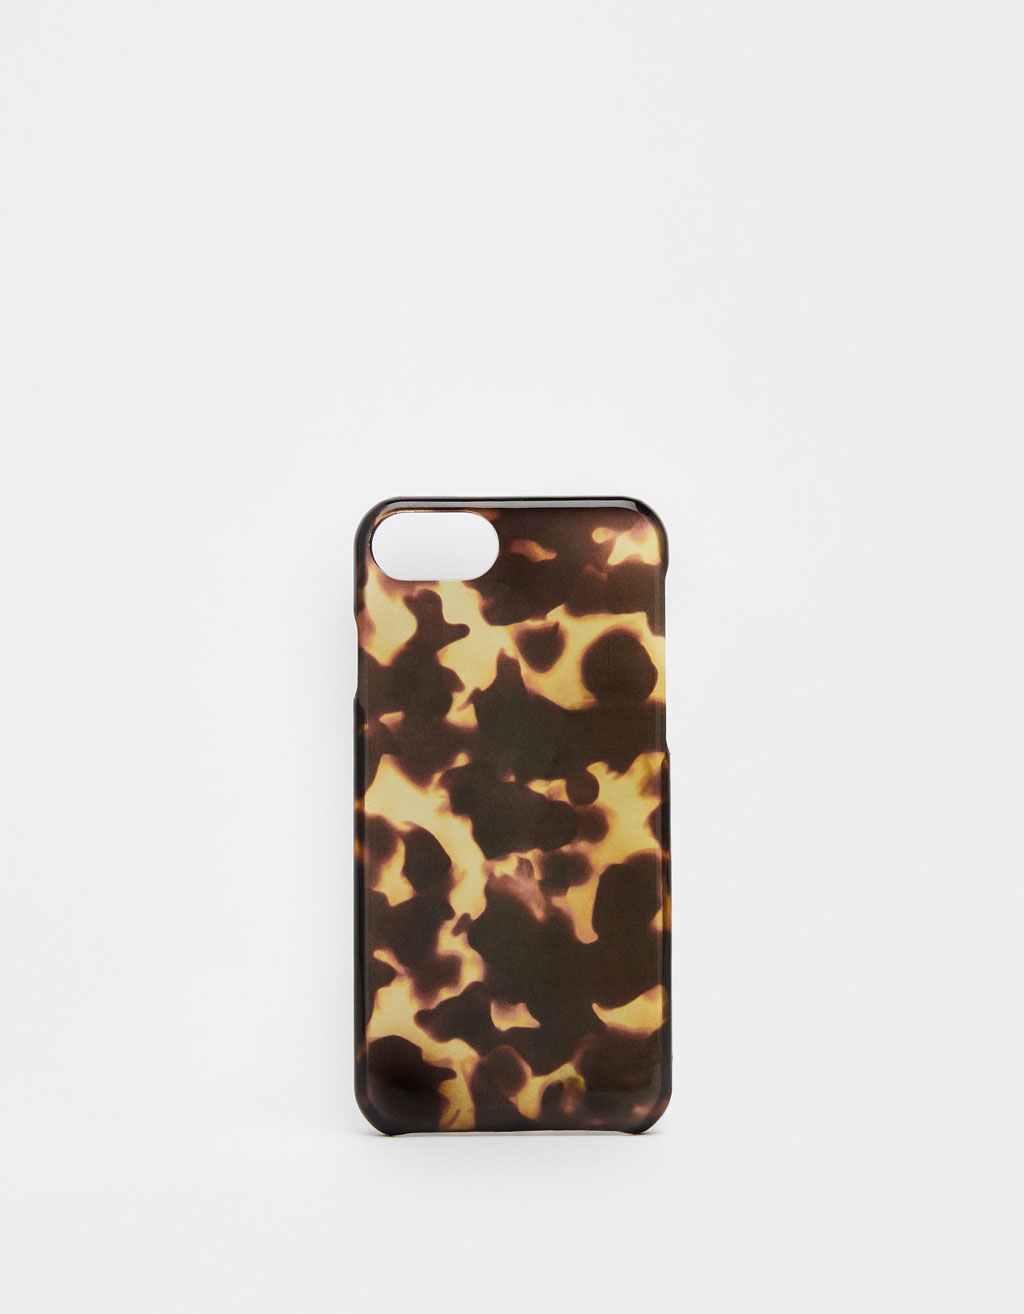 Tortoiseshell-effect iPhone 6/6S/7/8 case